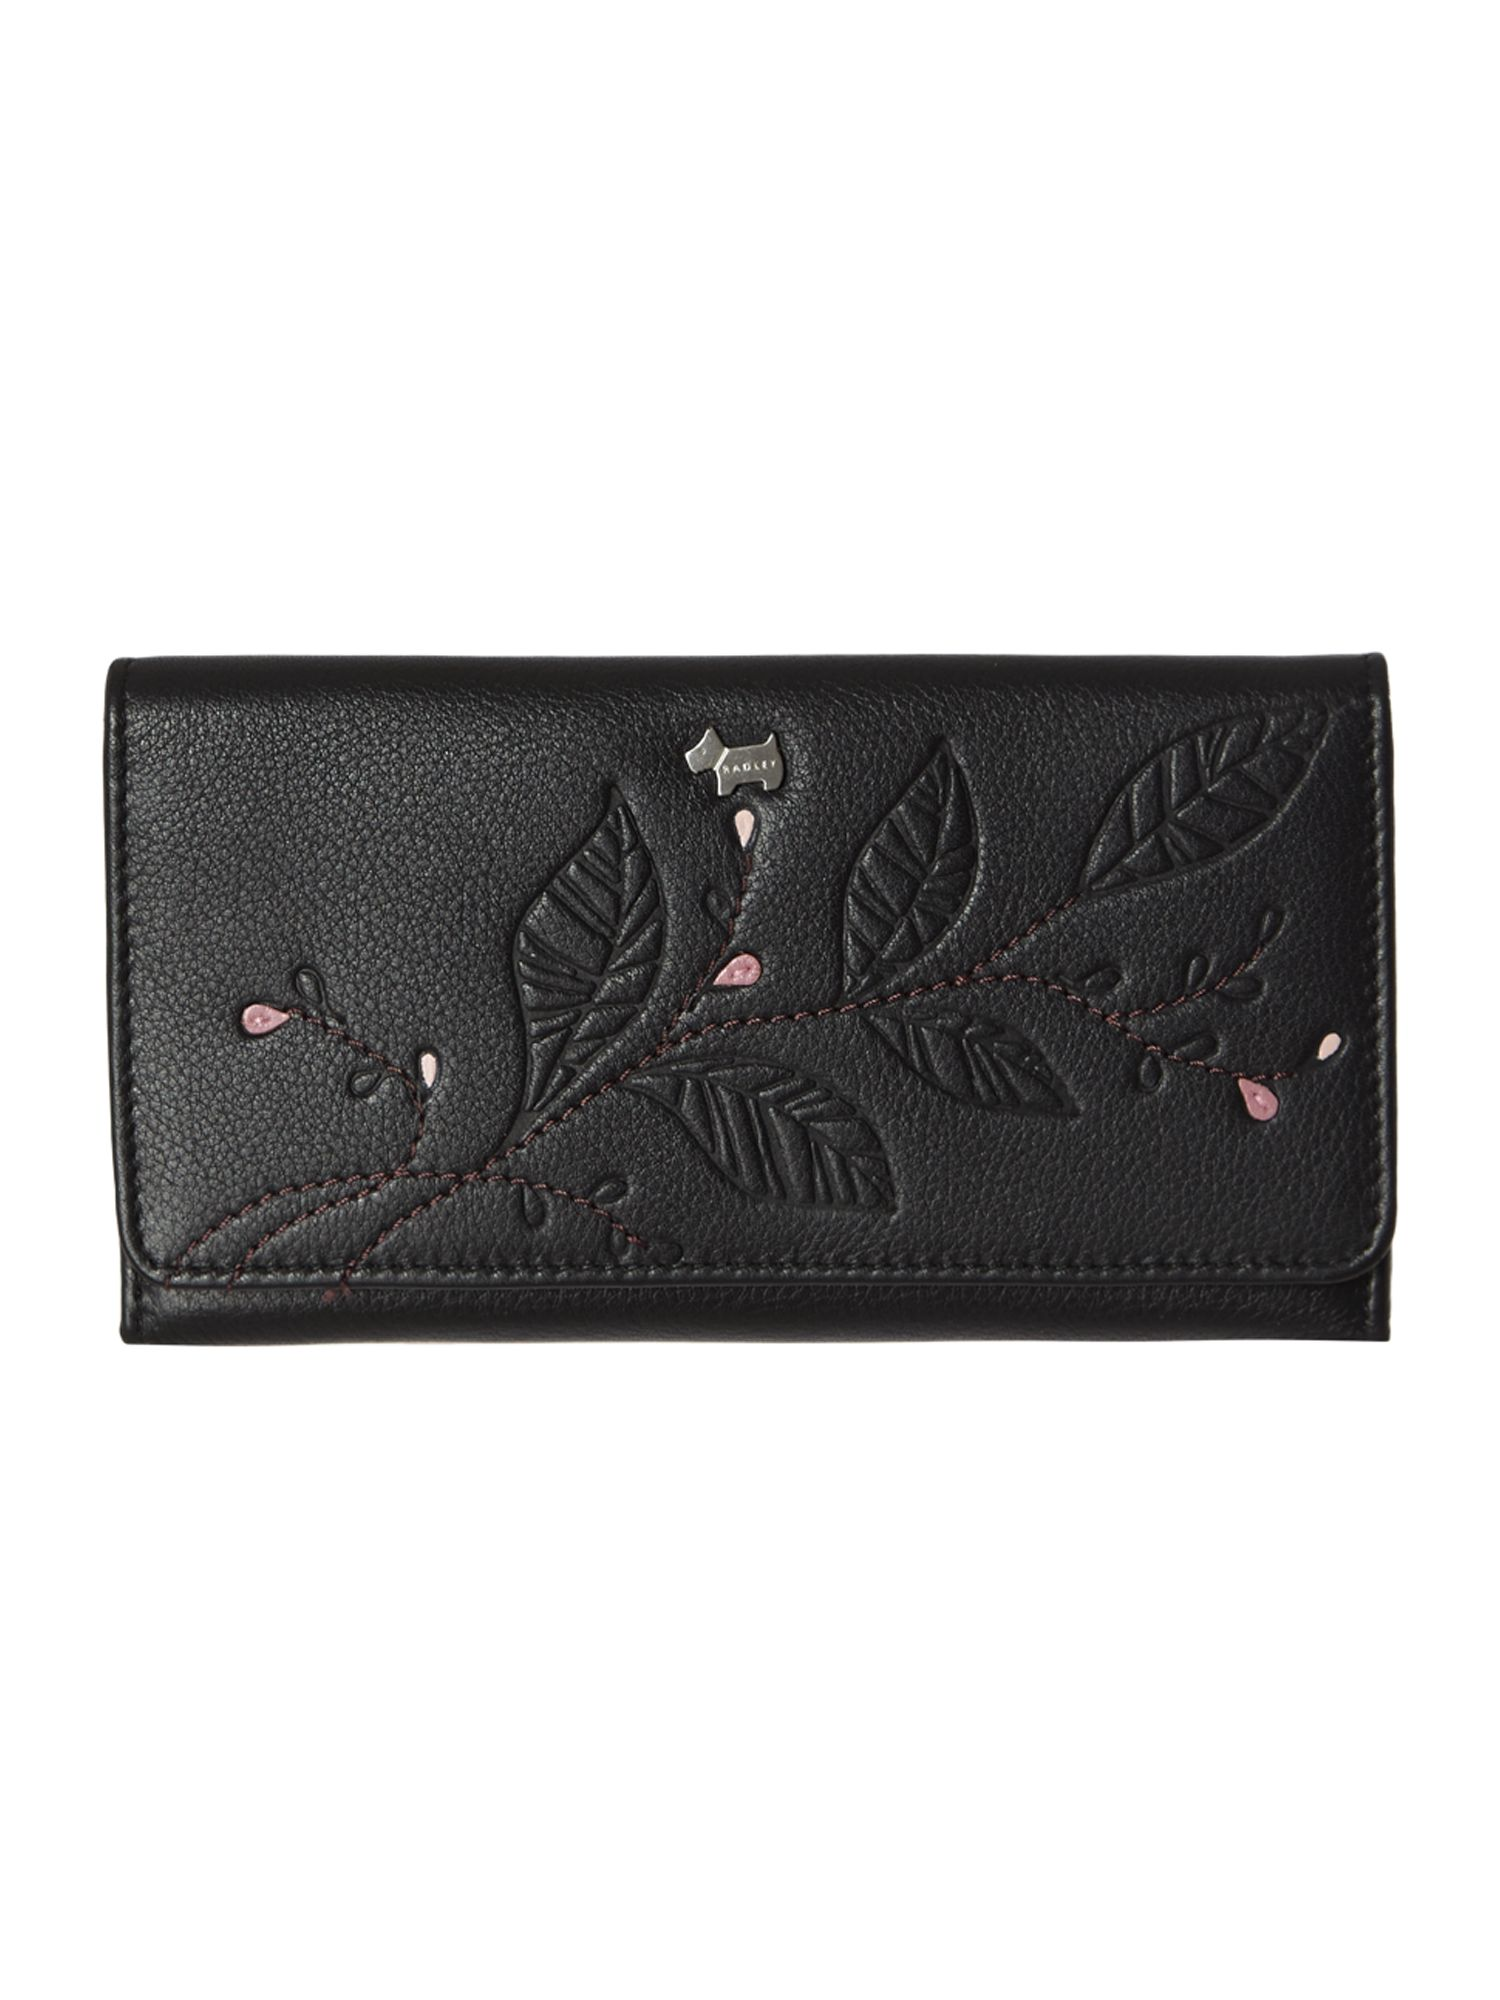 Laurel leaf black large trifold matinee purse